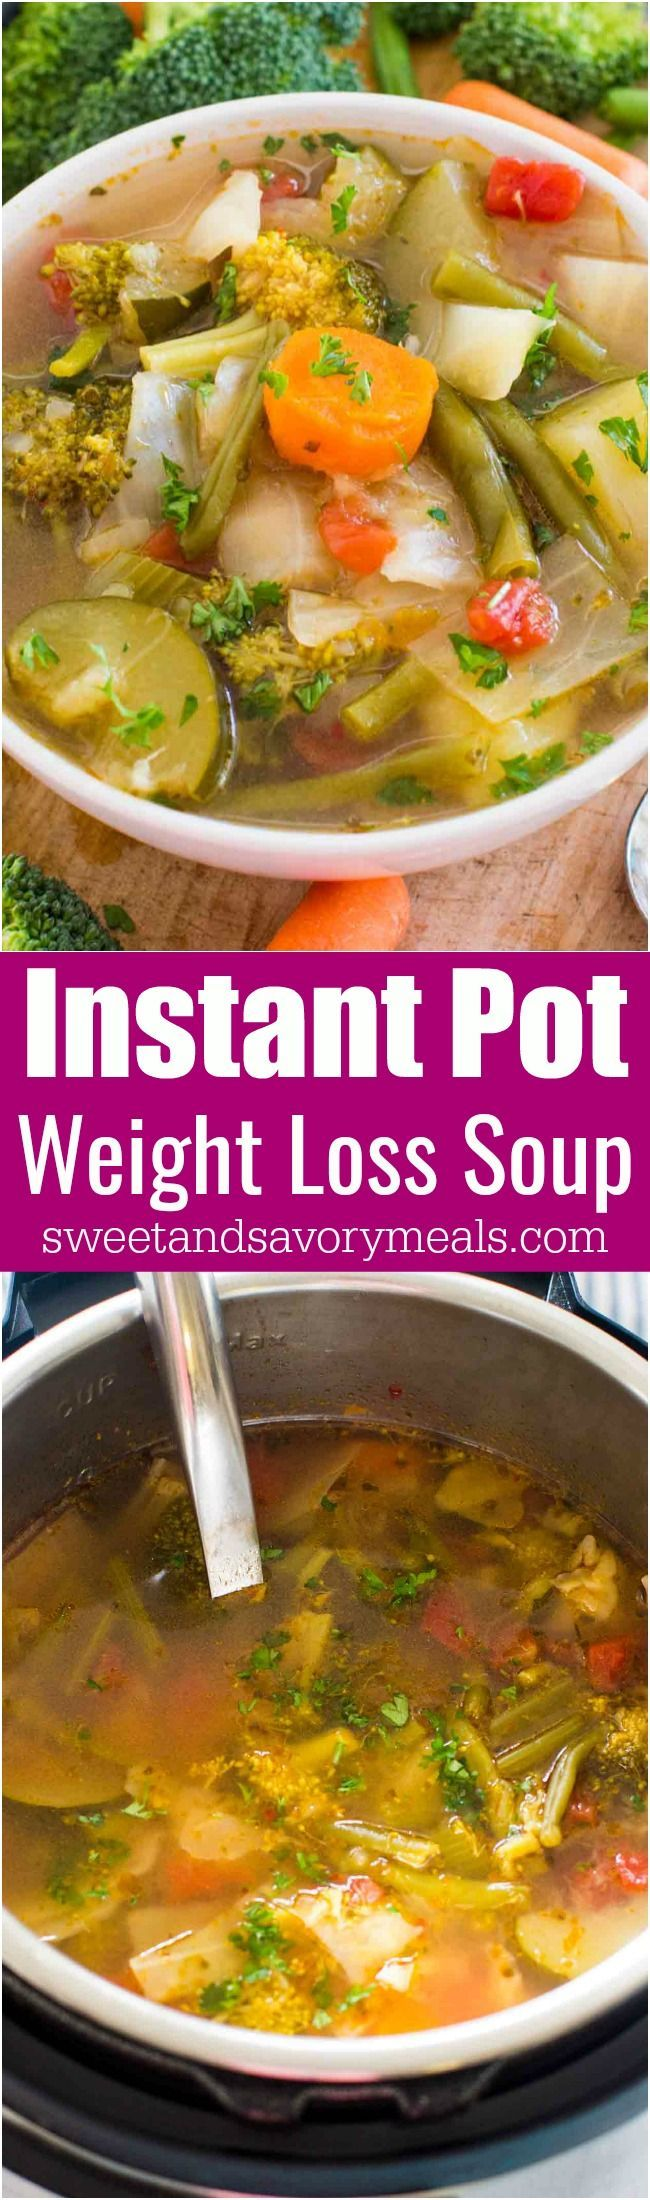 Instant Pot Weight Loss Soup is a very easy to make veggie soup that packs lots of nutrients and fiber to keep you full and boost your energy. #instantpot #soup #skinny #healthy #weightloss